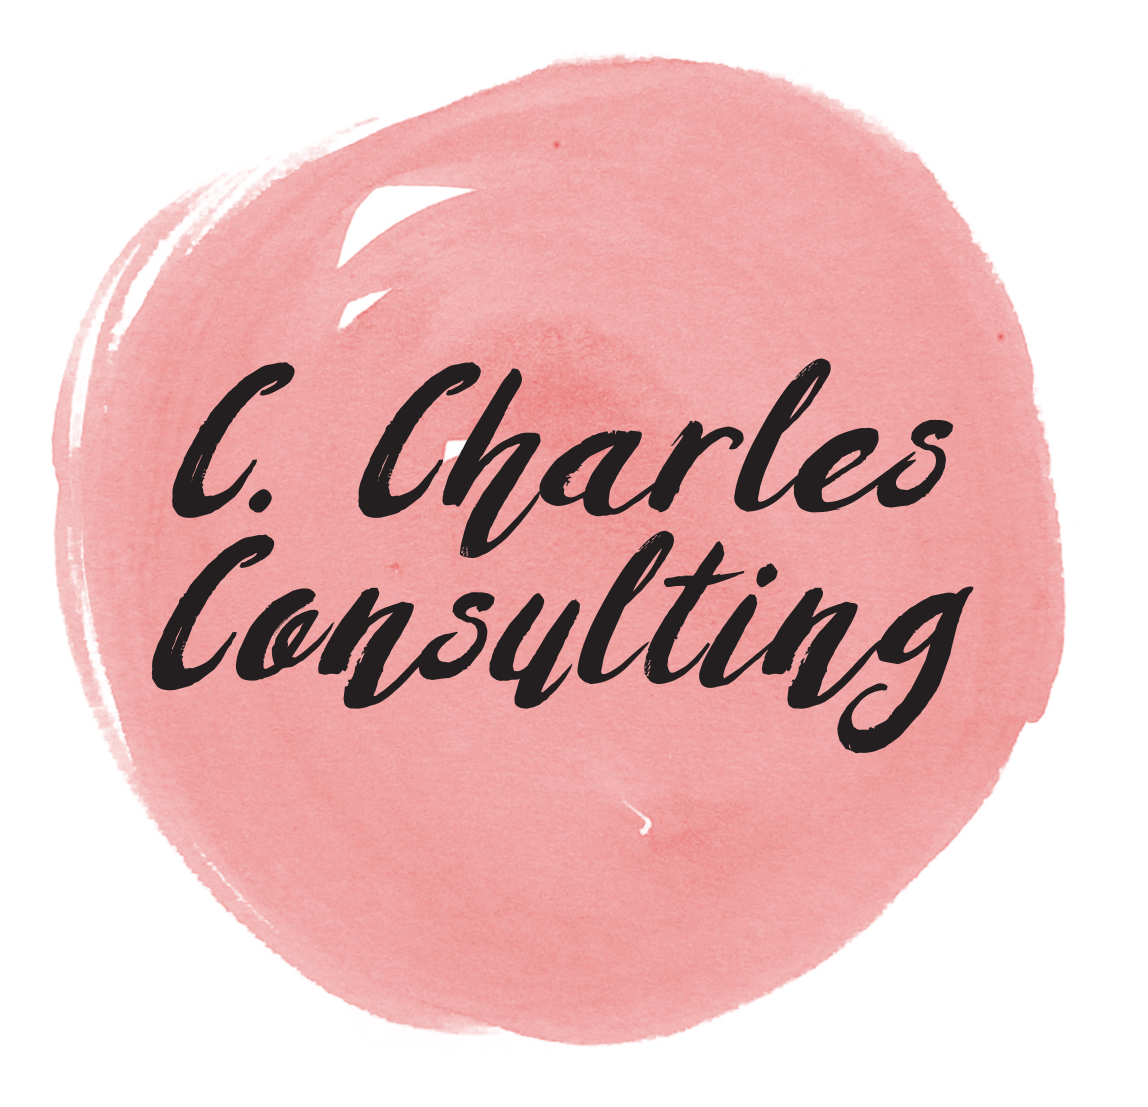 C. Charles Consulting